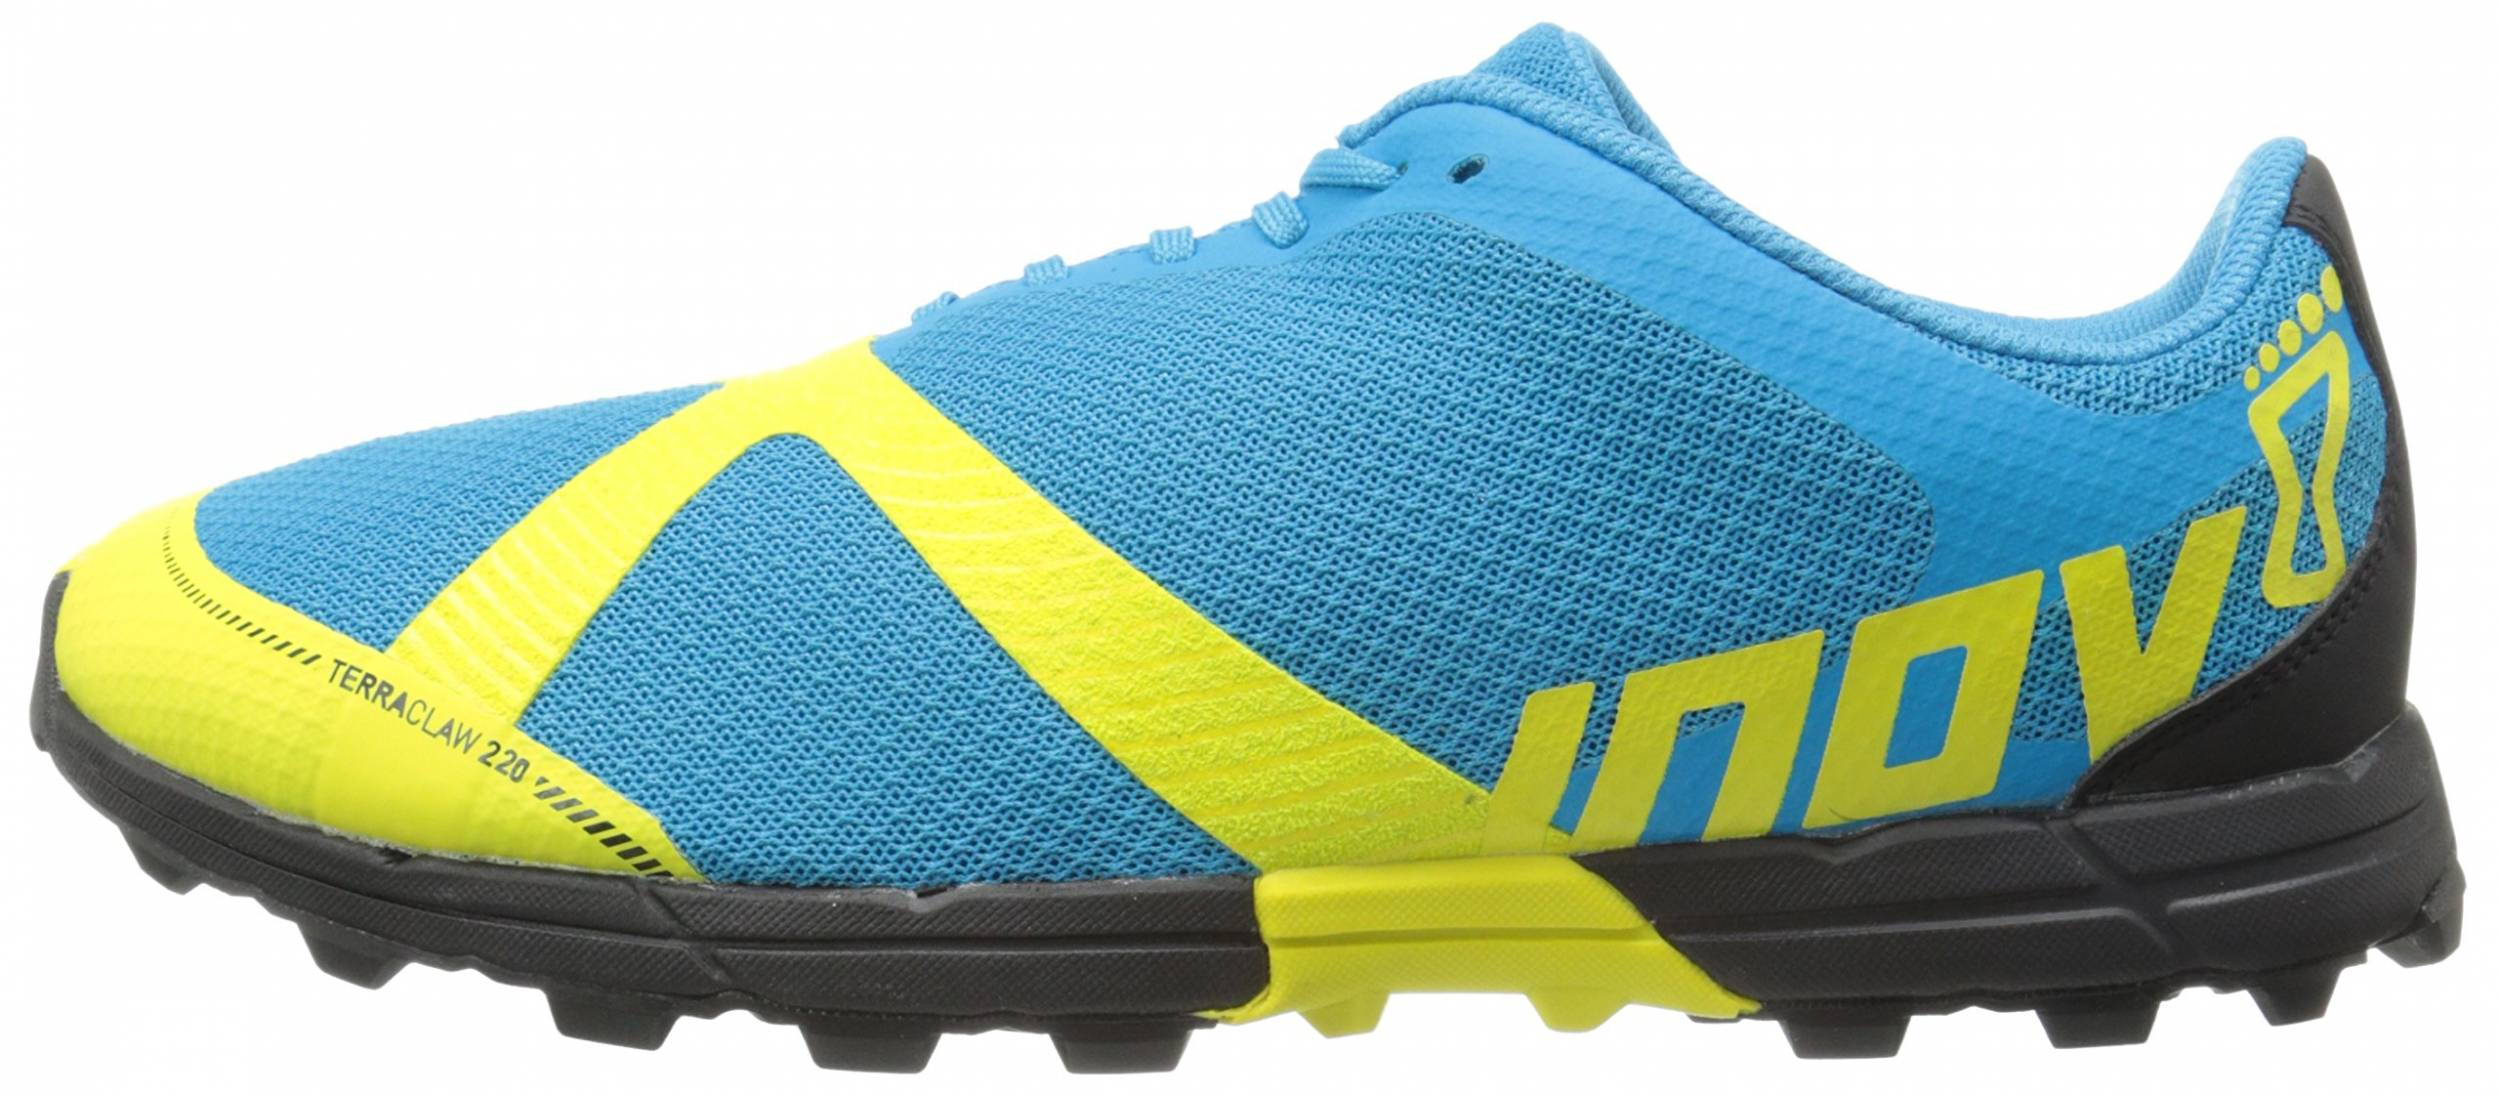 Review of Inov-8 Terraclaw 220